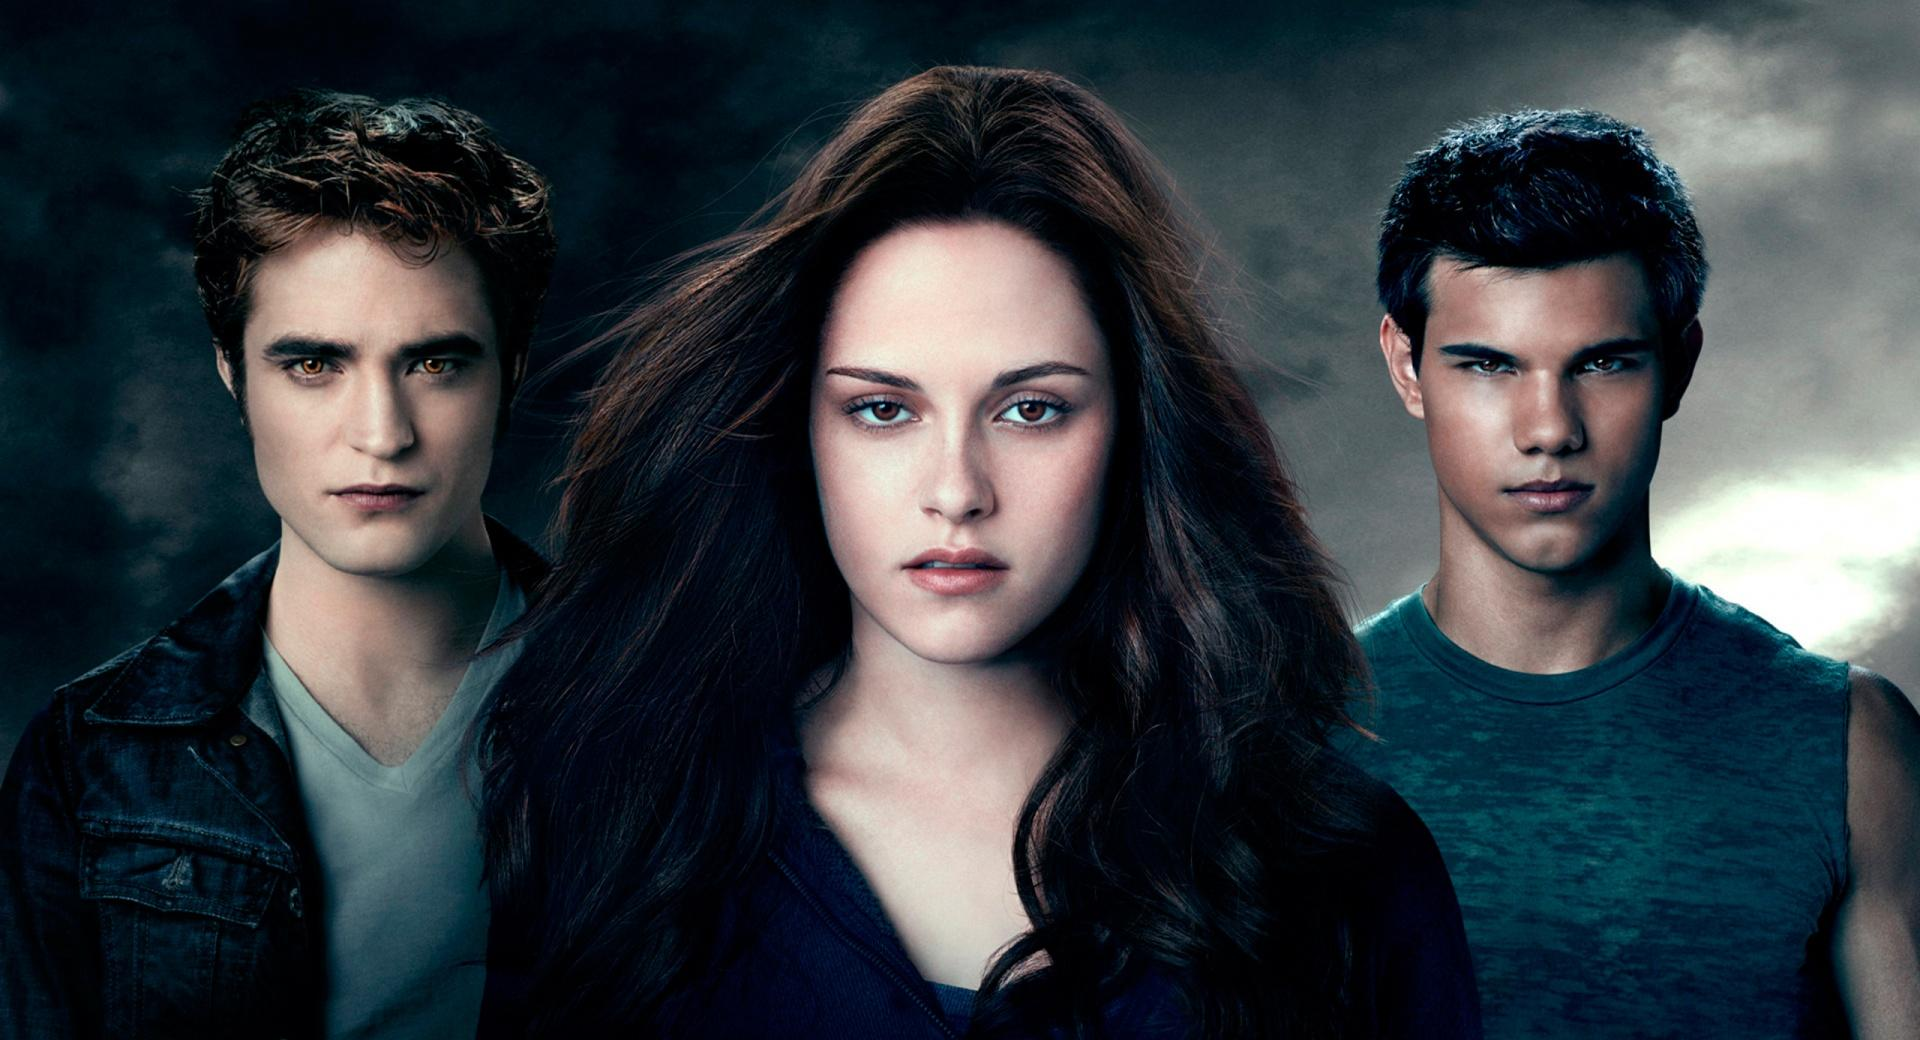 Edward, Bella and Jacob wallpapers HD quality